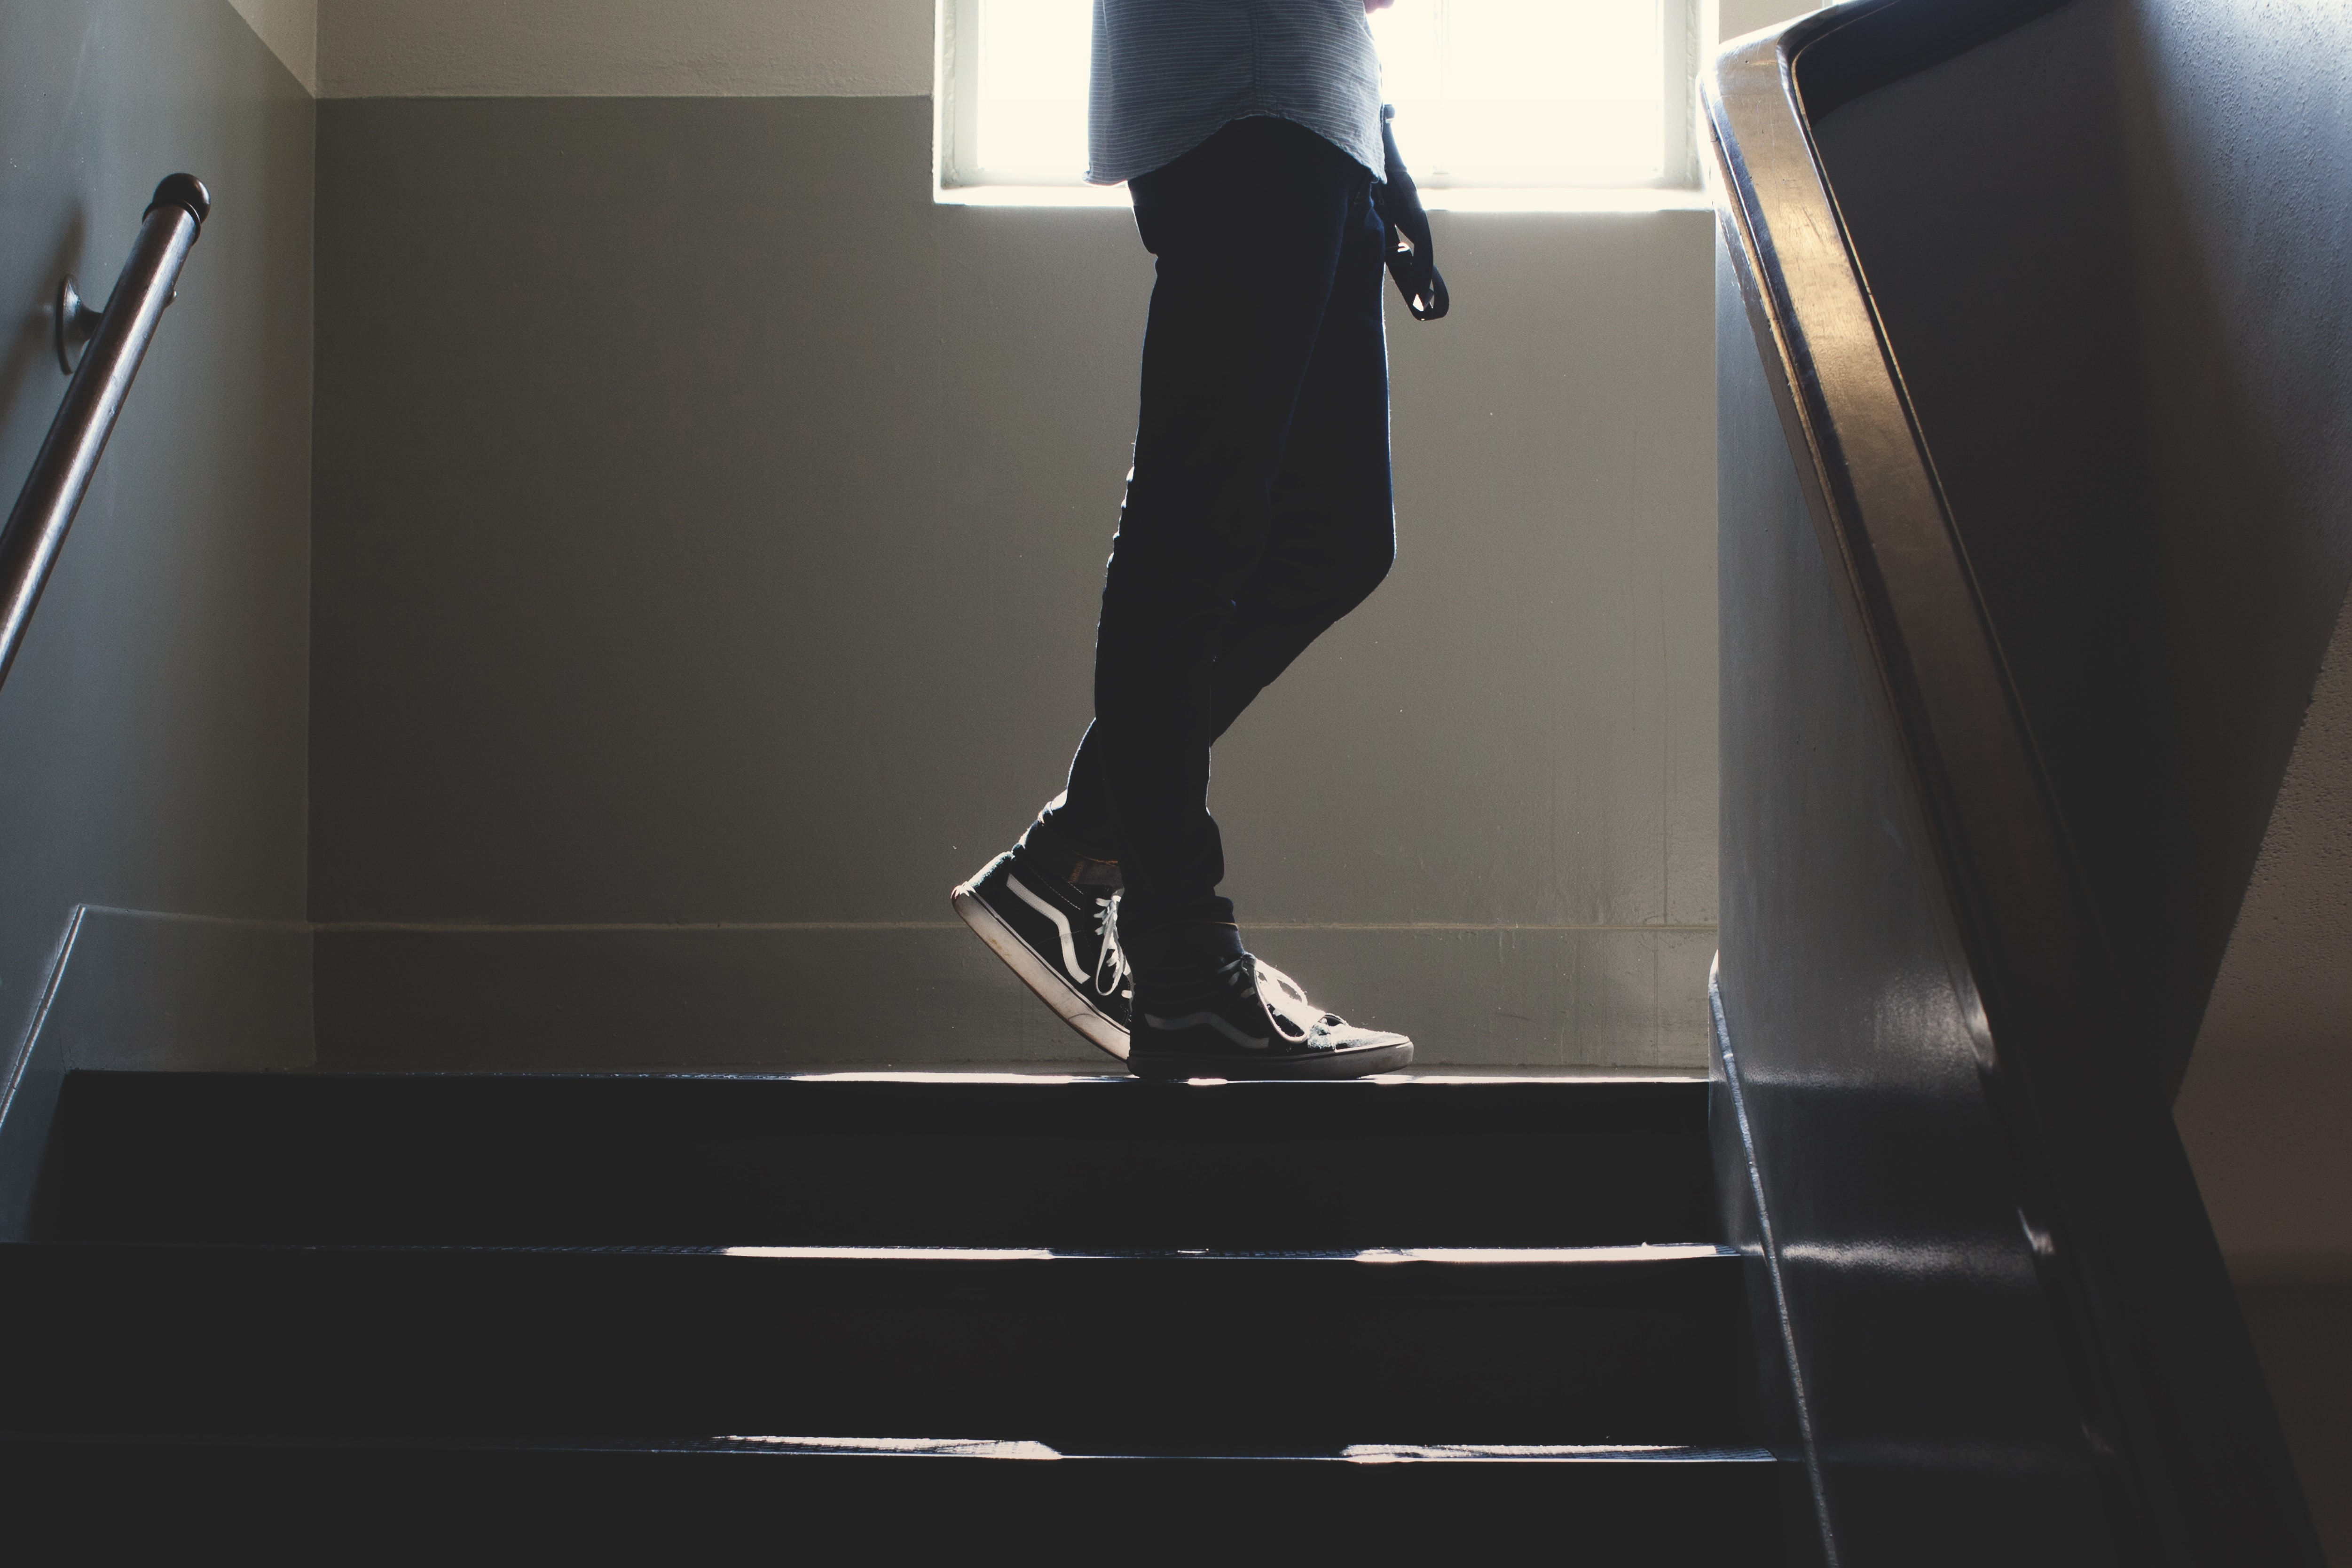 A hipster boy standing in a stairwell wearing Vans